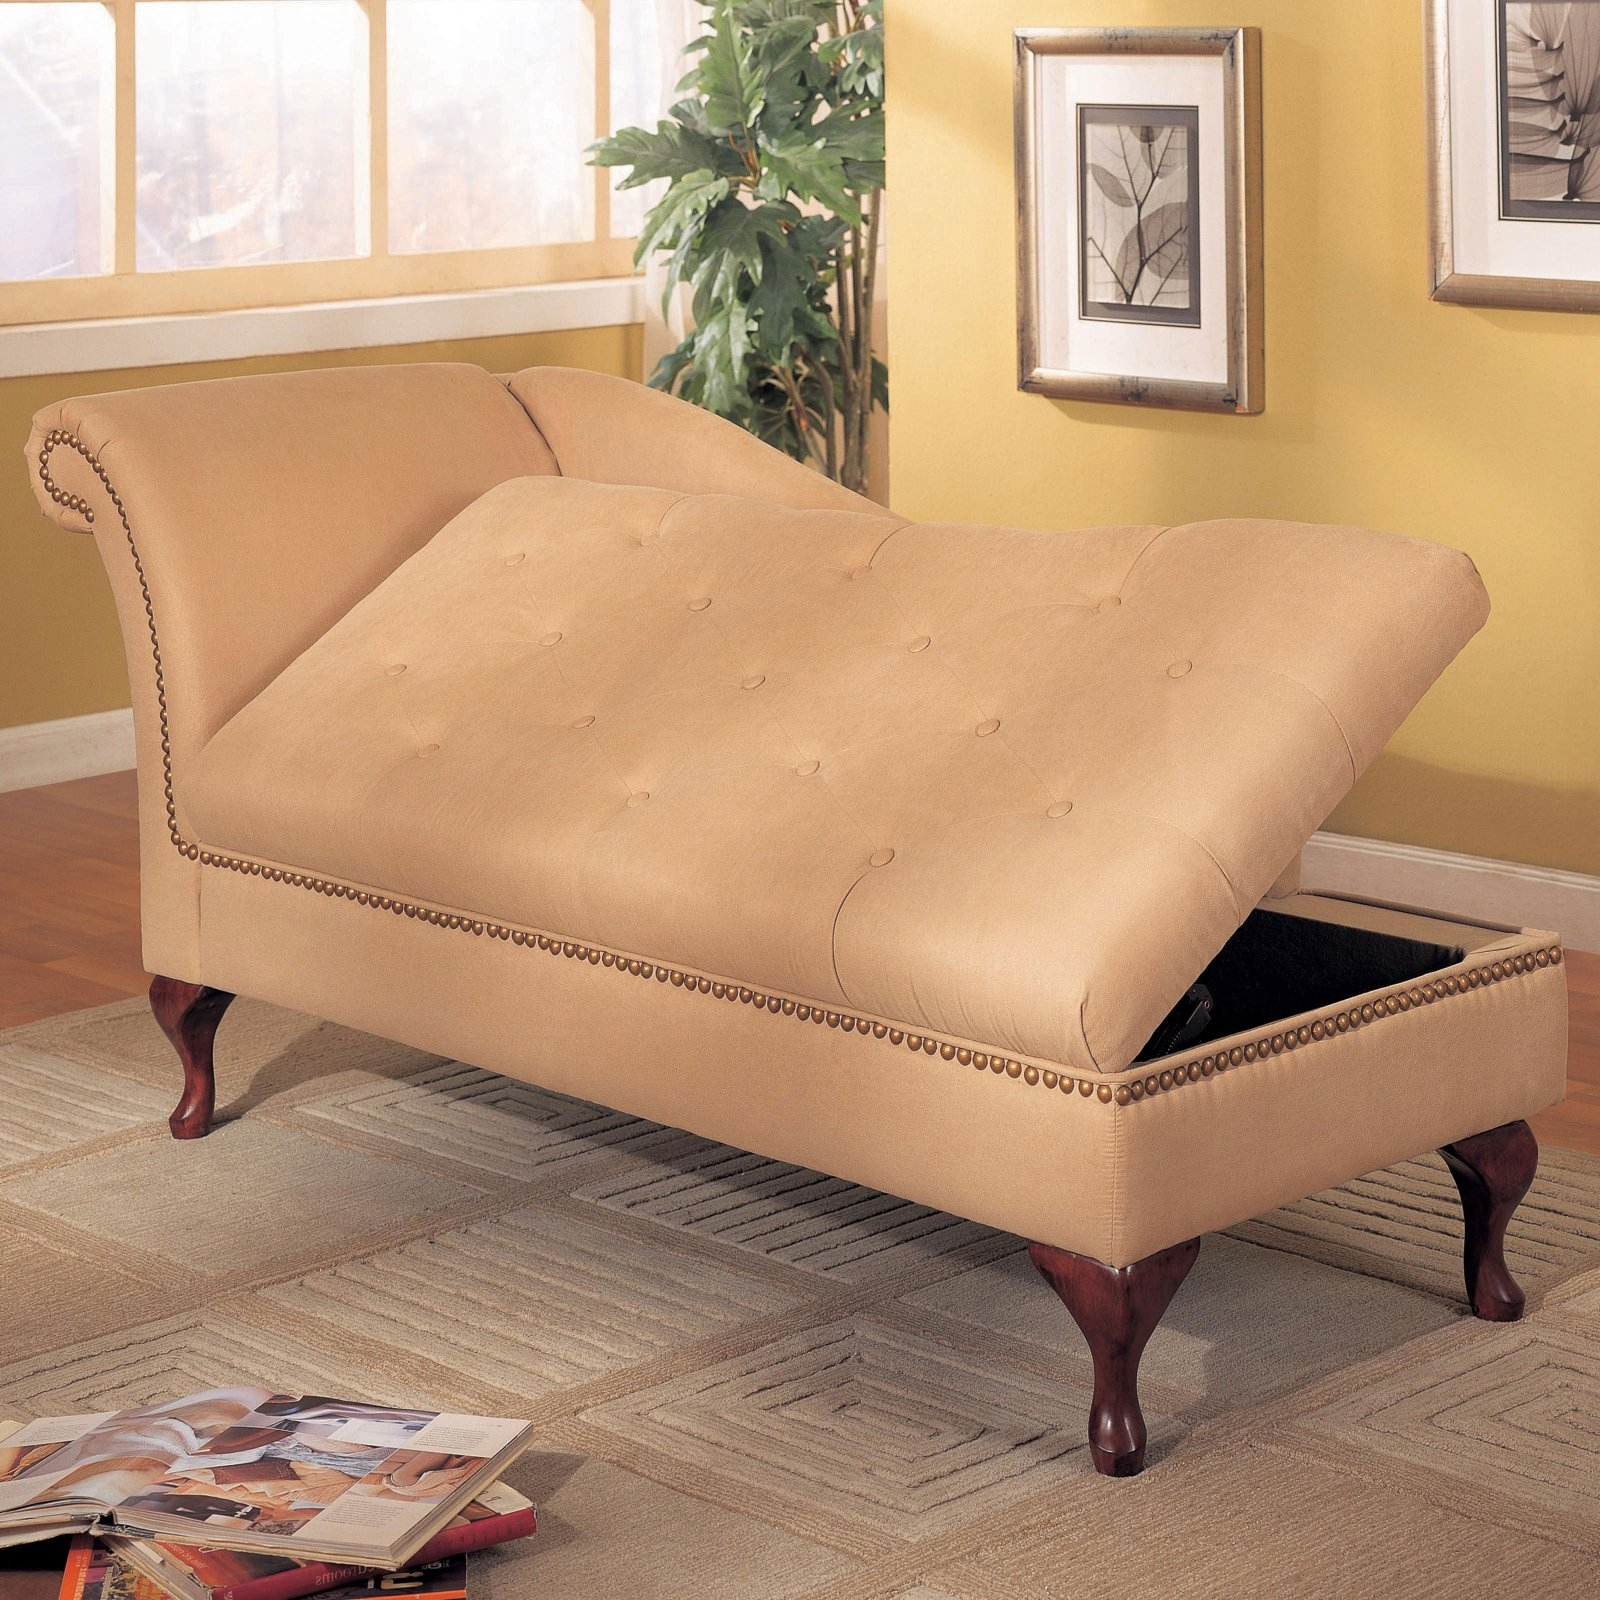 Wide Chaise Lounges Inside Recent Yellow Chaise Lounge Chairs • Lounge Chairs Ideas (View 10 of 15)